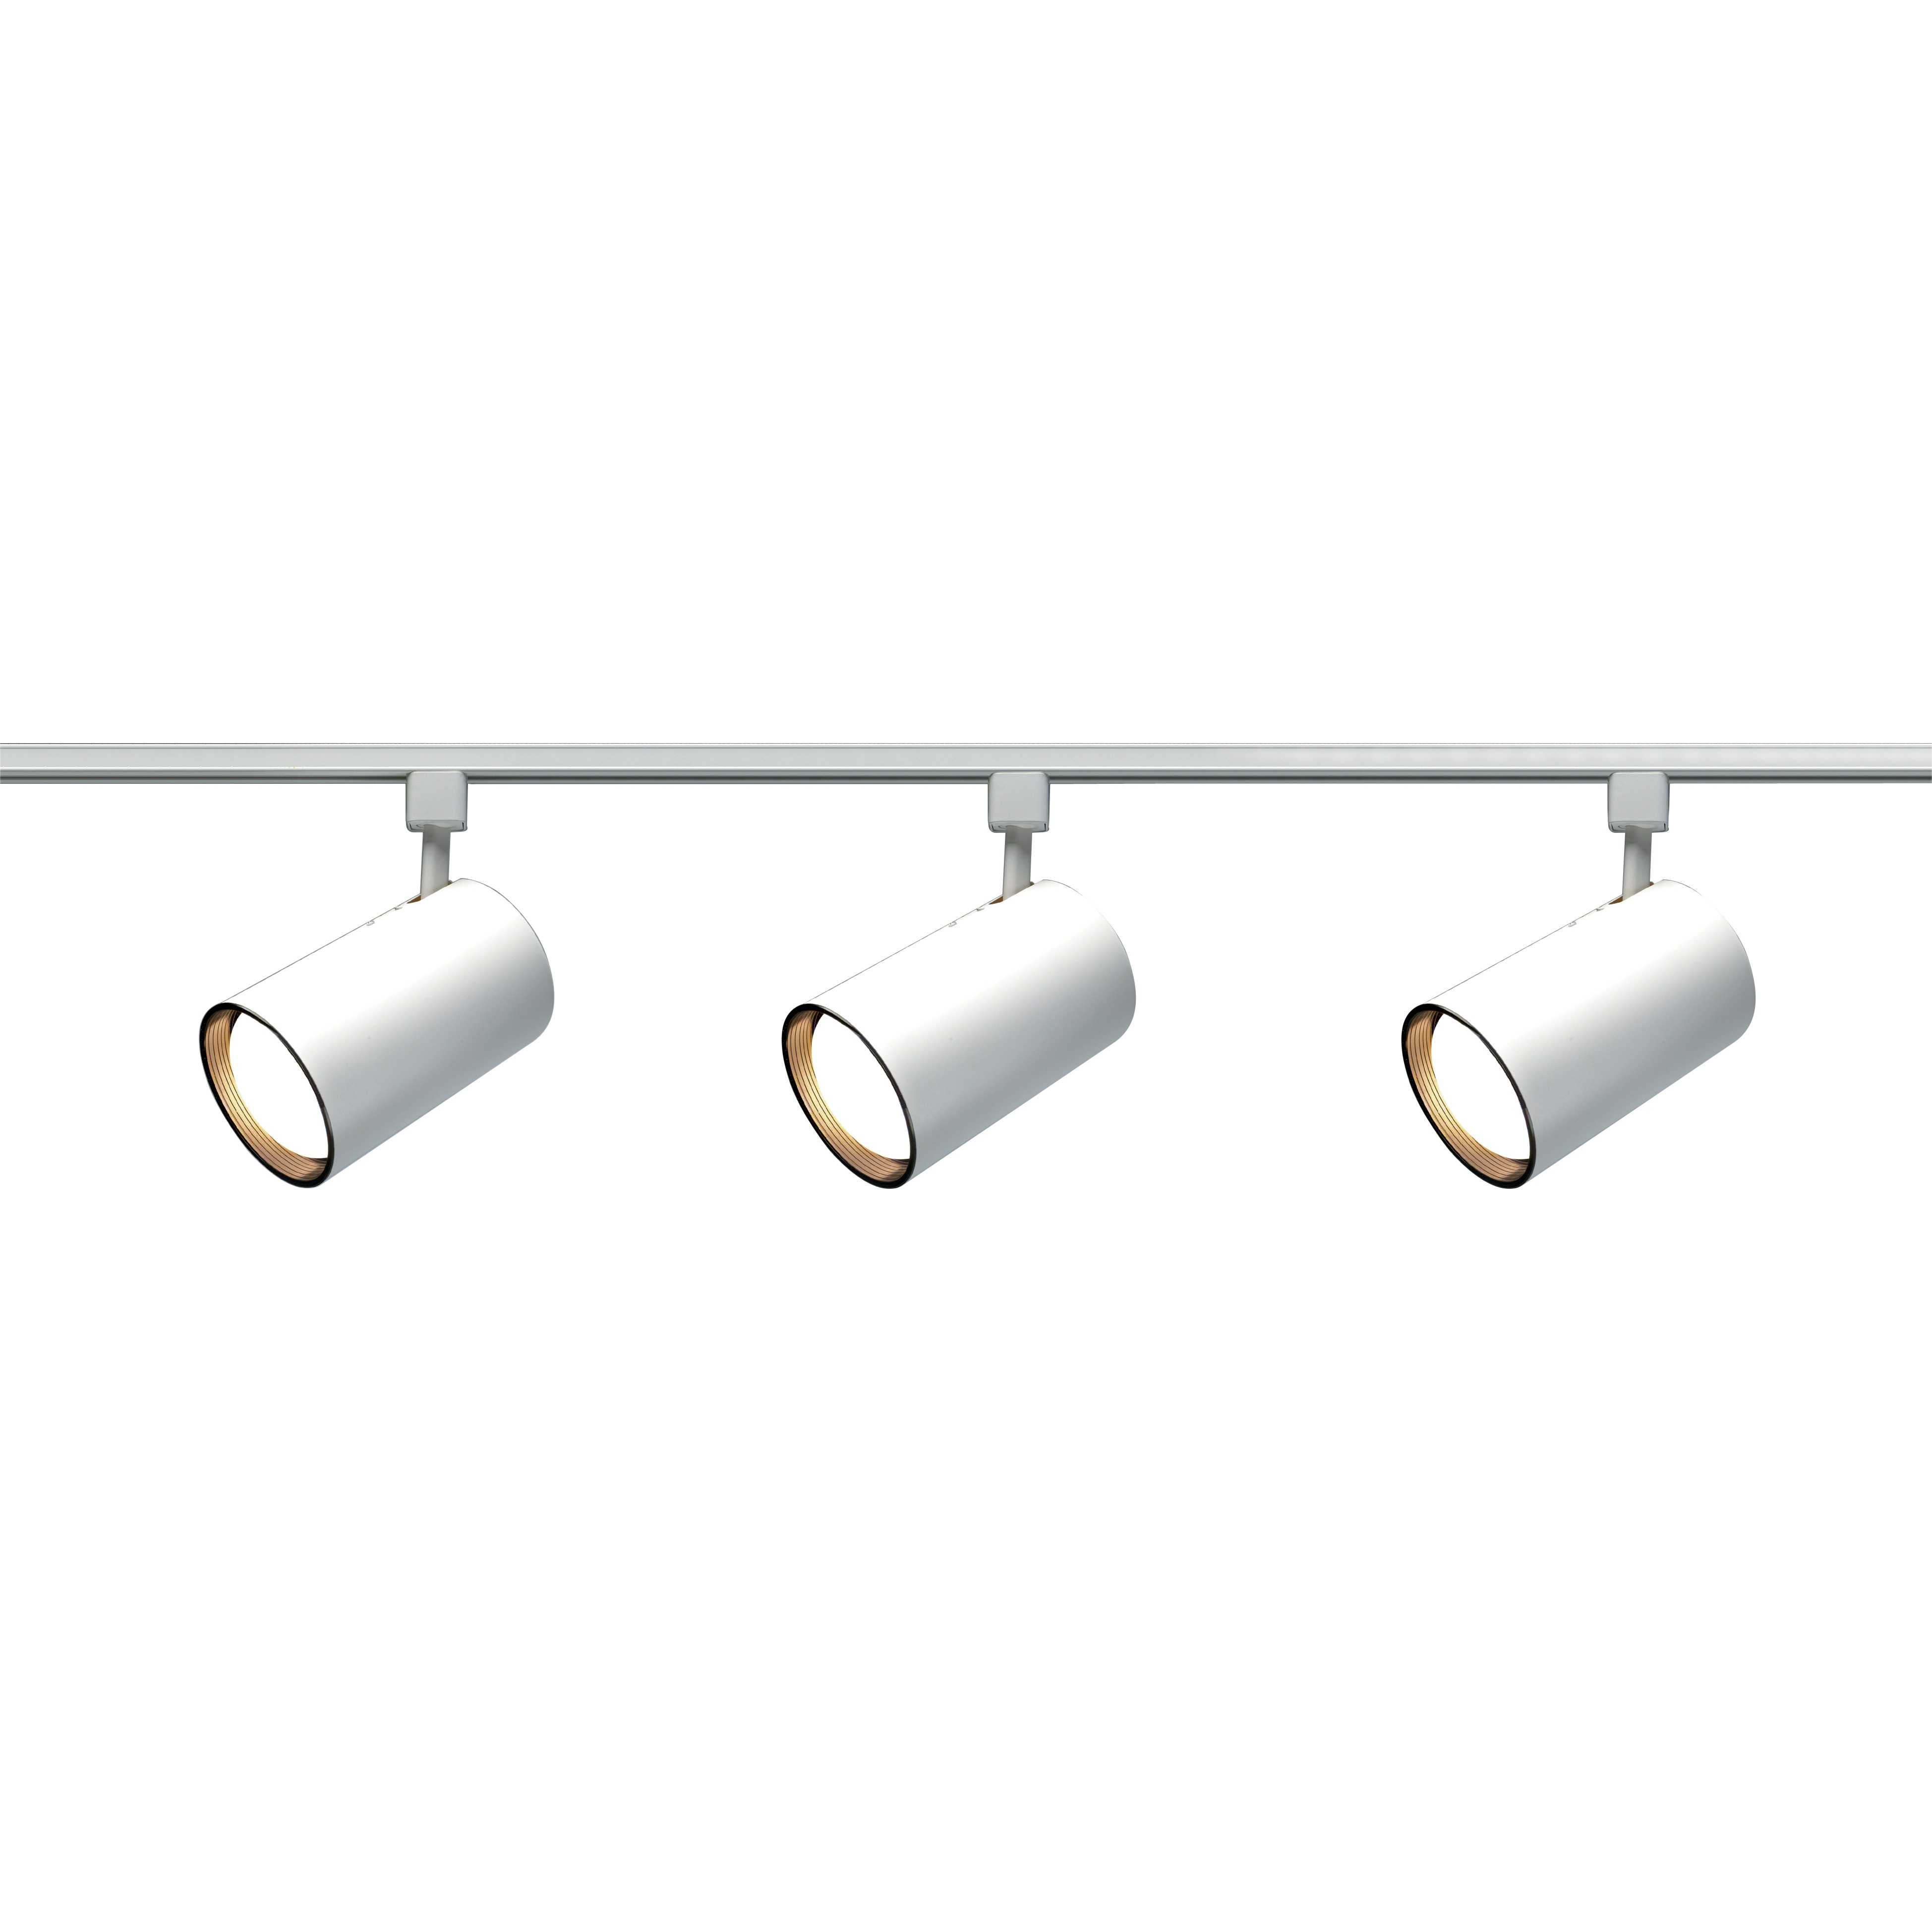 chic 3 Light R30 Straight Cylinder Track Lighting Kit by nuvo lighting for home lighting ideas